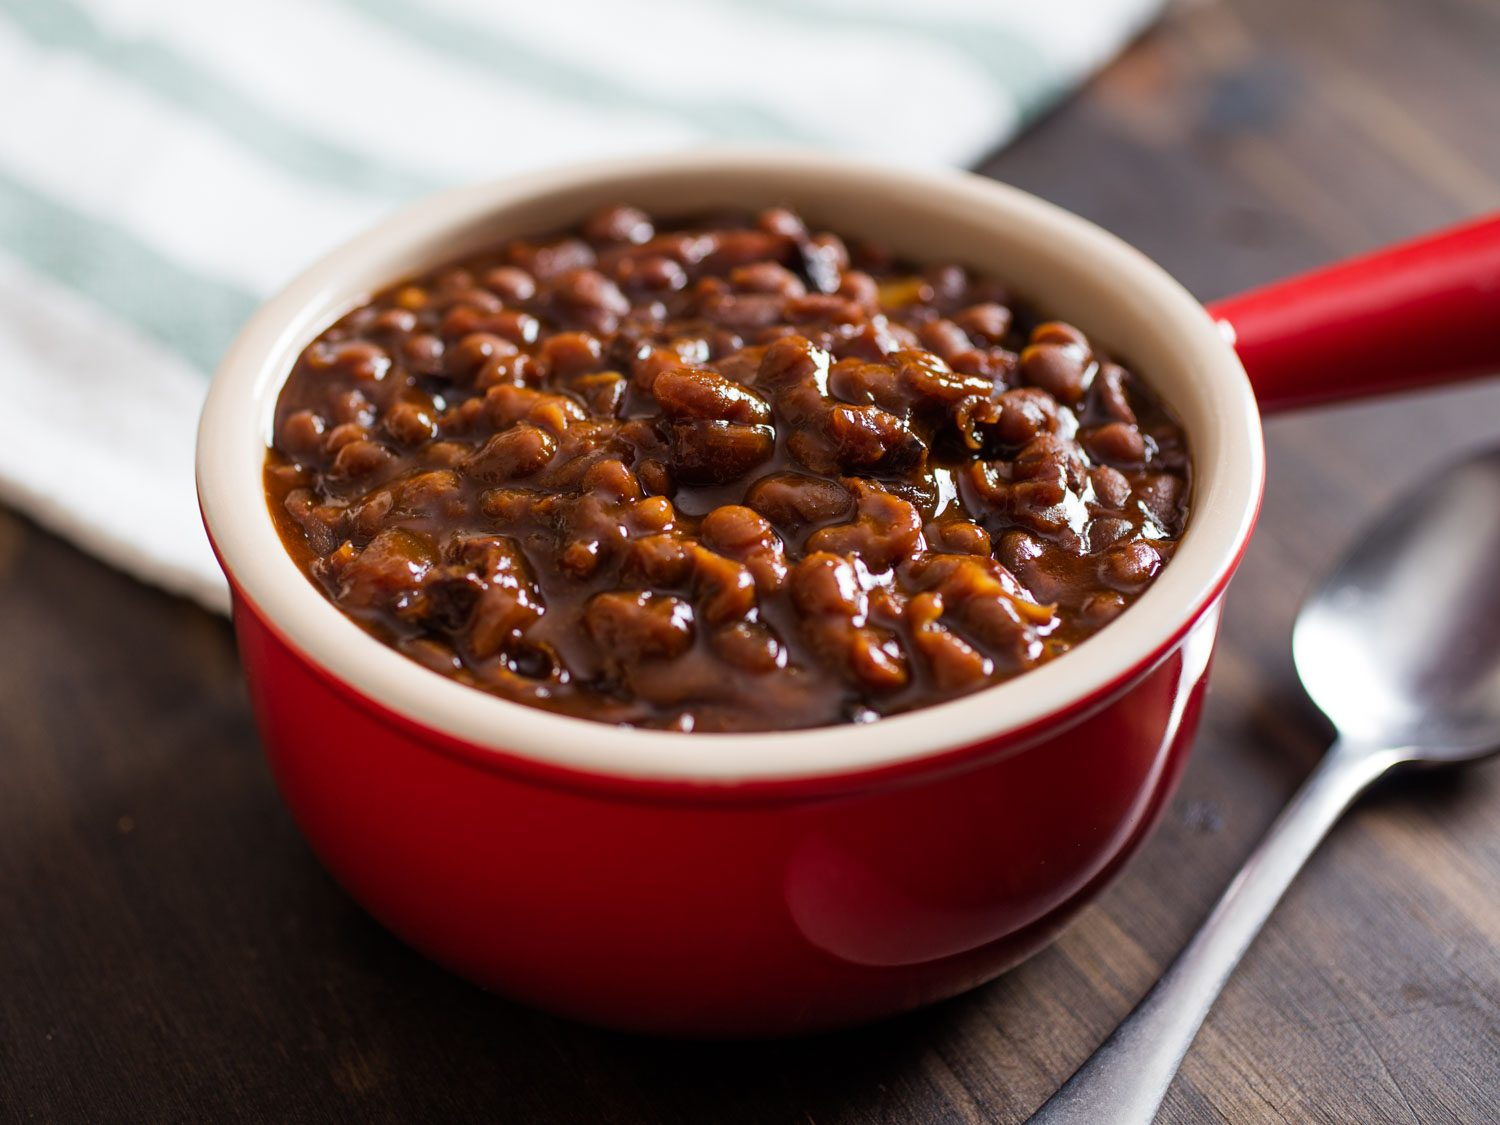 20160901-baked-beans-vicky-wasik-11-1500x1125.jpg